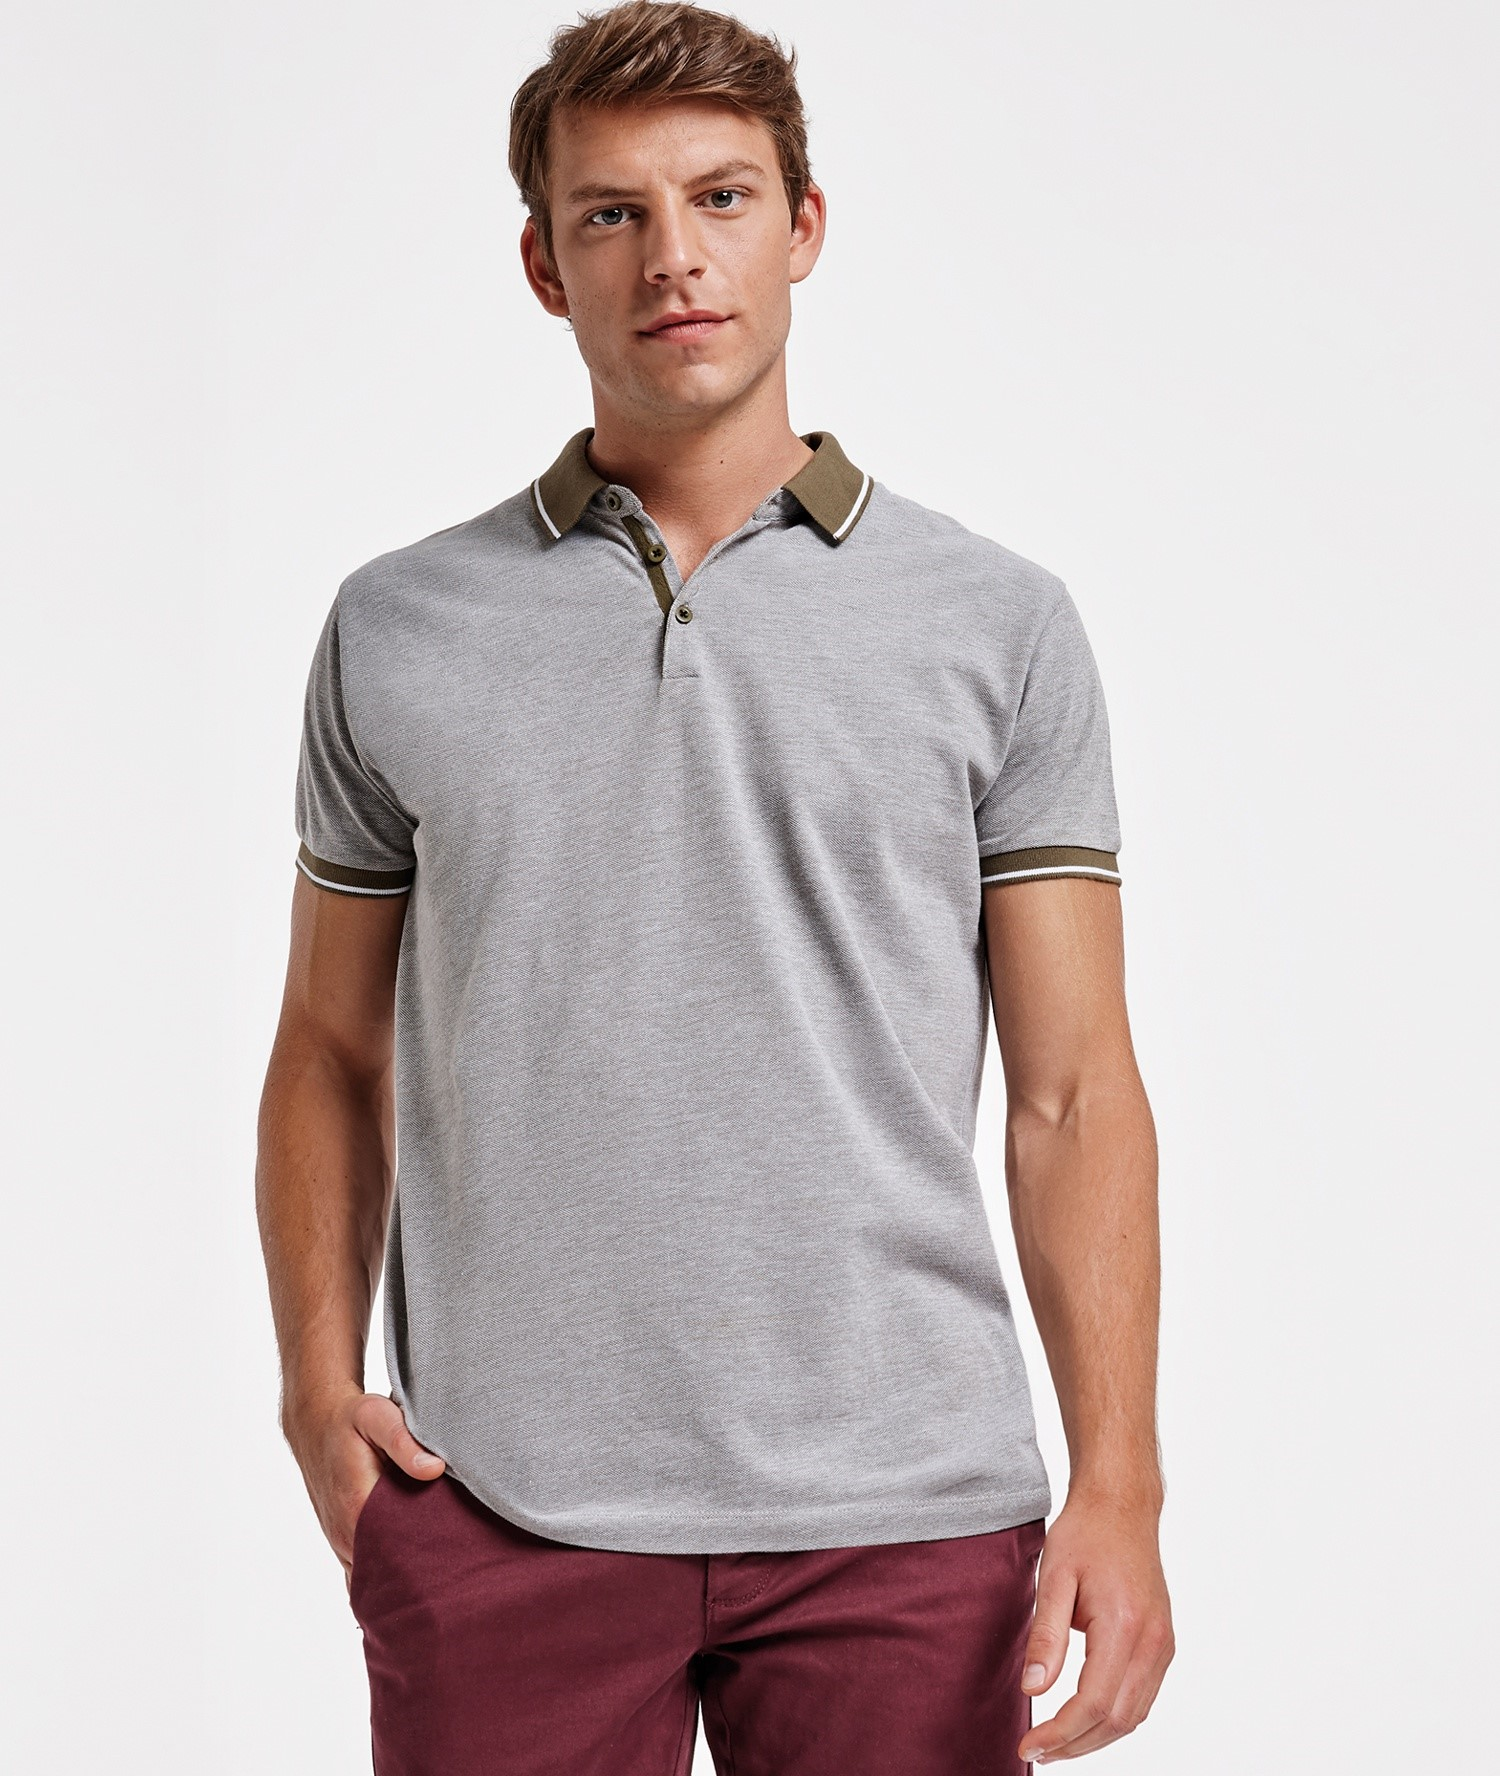 POLO SHIRT ROLY BOWIE